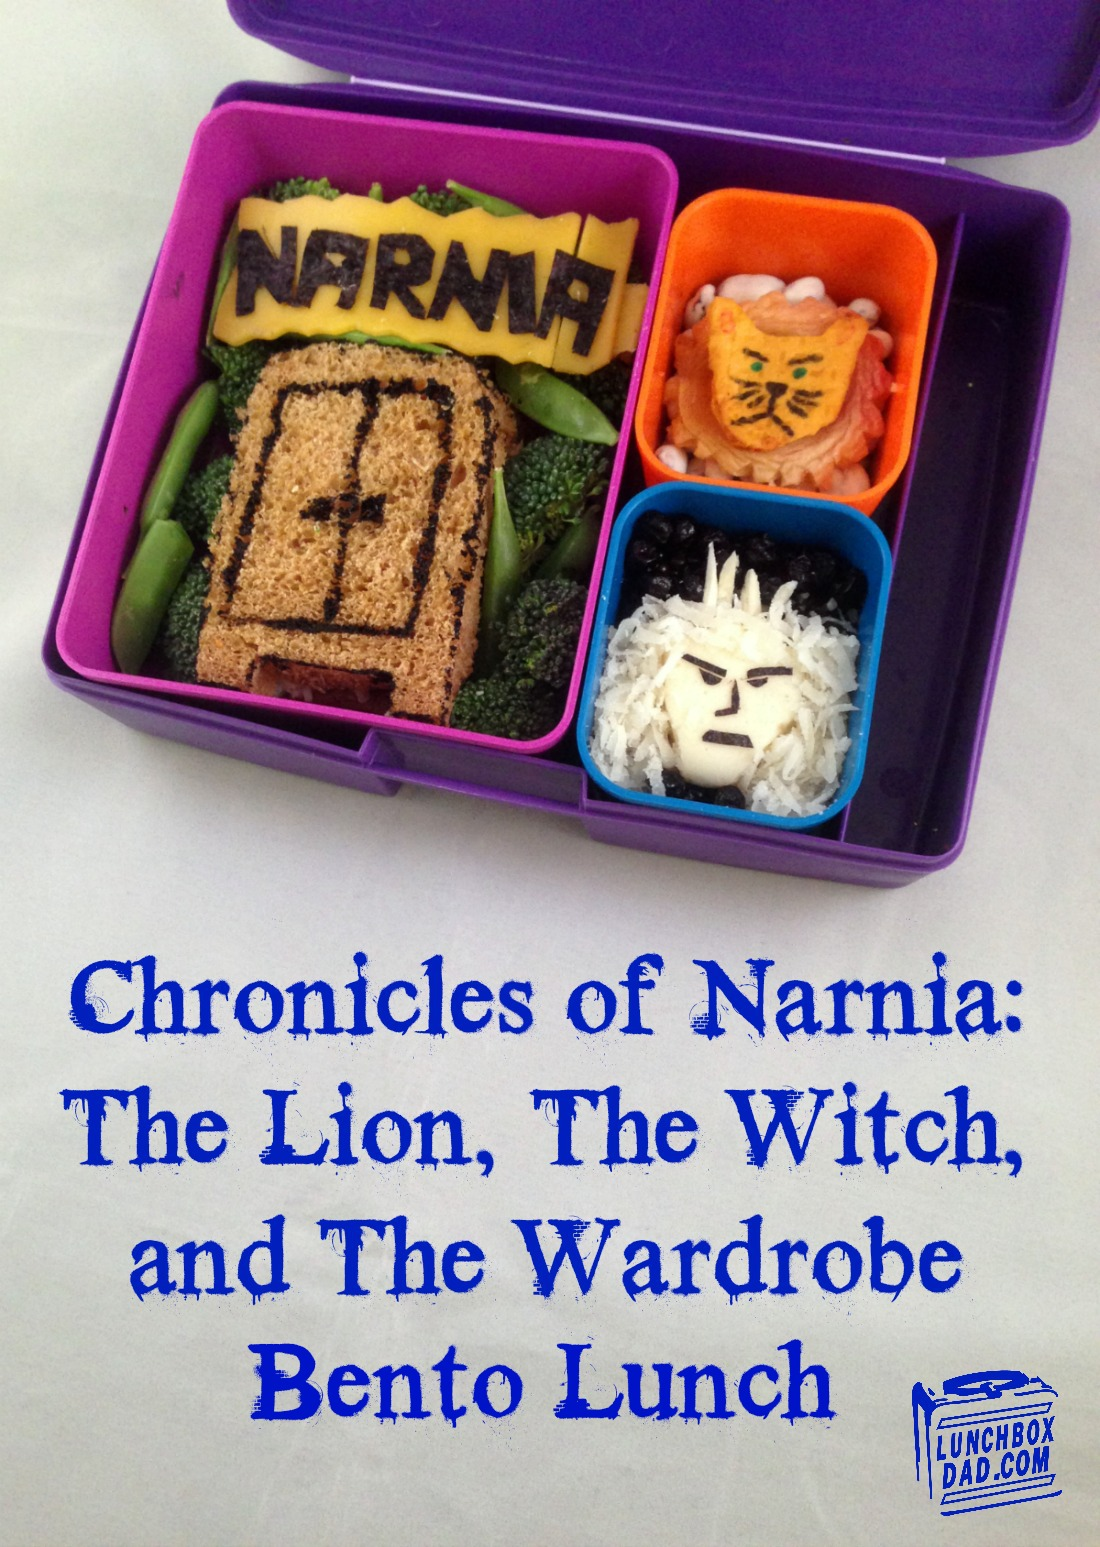 http://www.lunchboxdad.com/2014/03/the-chronicles-of-narnia-lunch-lion.html